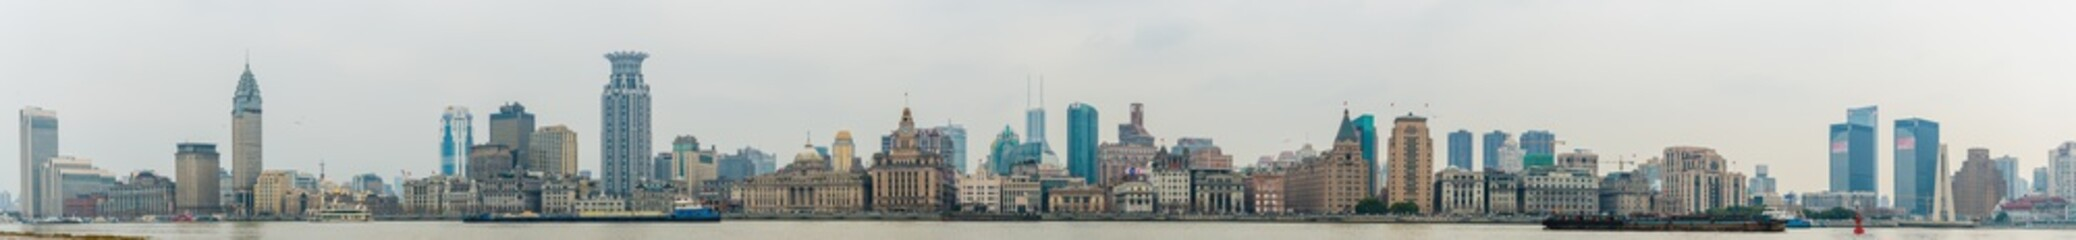 panoramic view of River Boats on the Huangpu River and as Background the Skyline of the Northern Part of Puxi